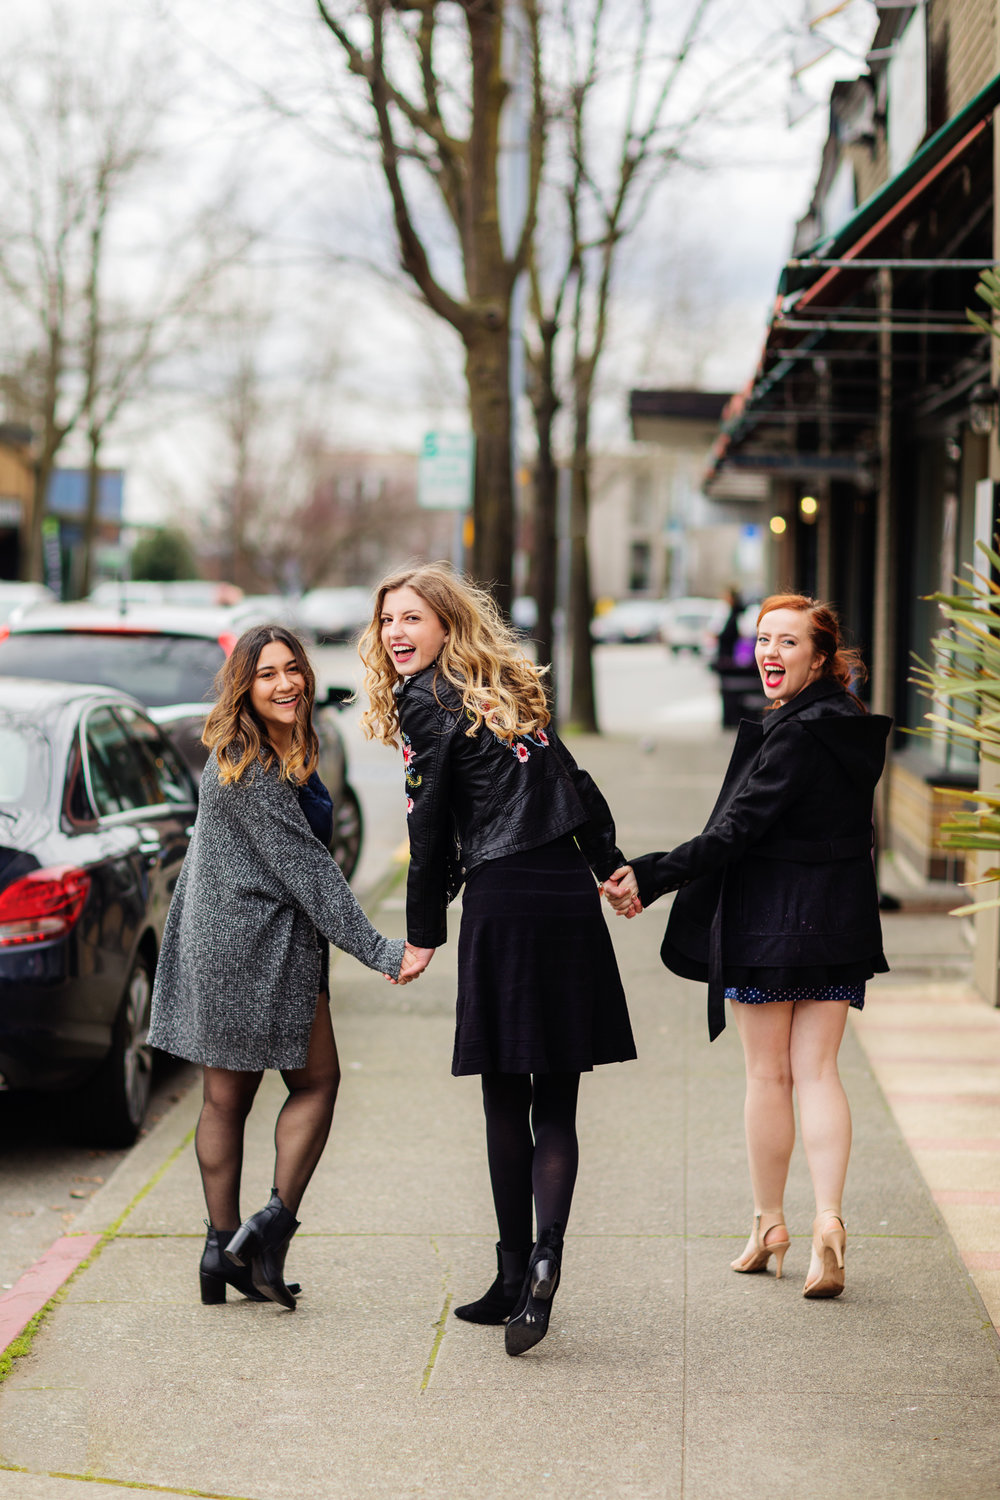 ariellanoellephotography-friend-photoshoot-senior-girls-highschool-seattle-bellevue-kirkland-area-1-2.jpg